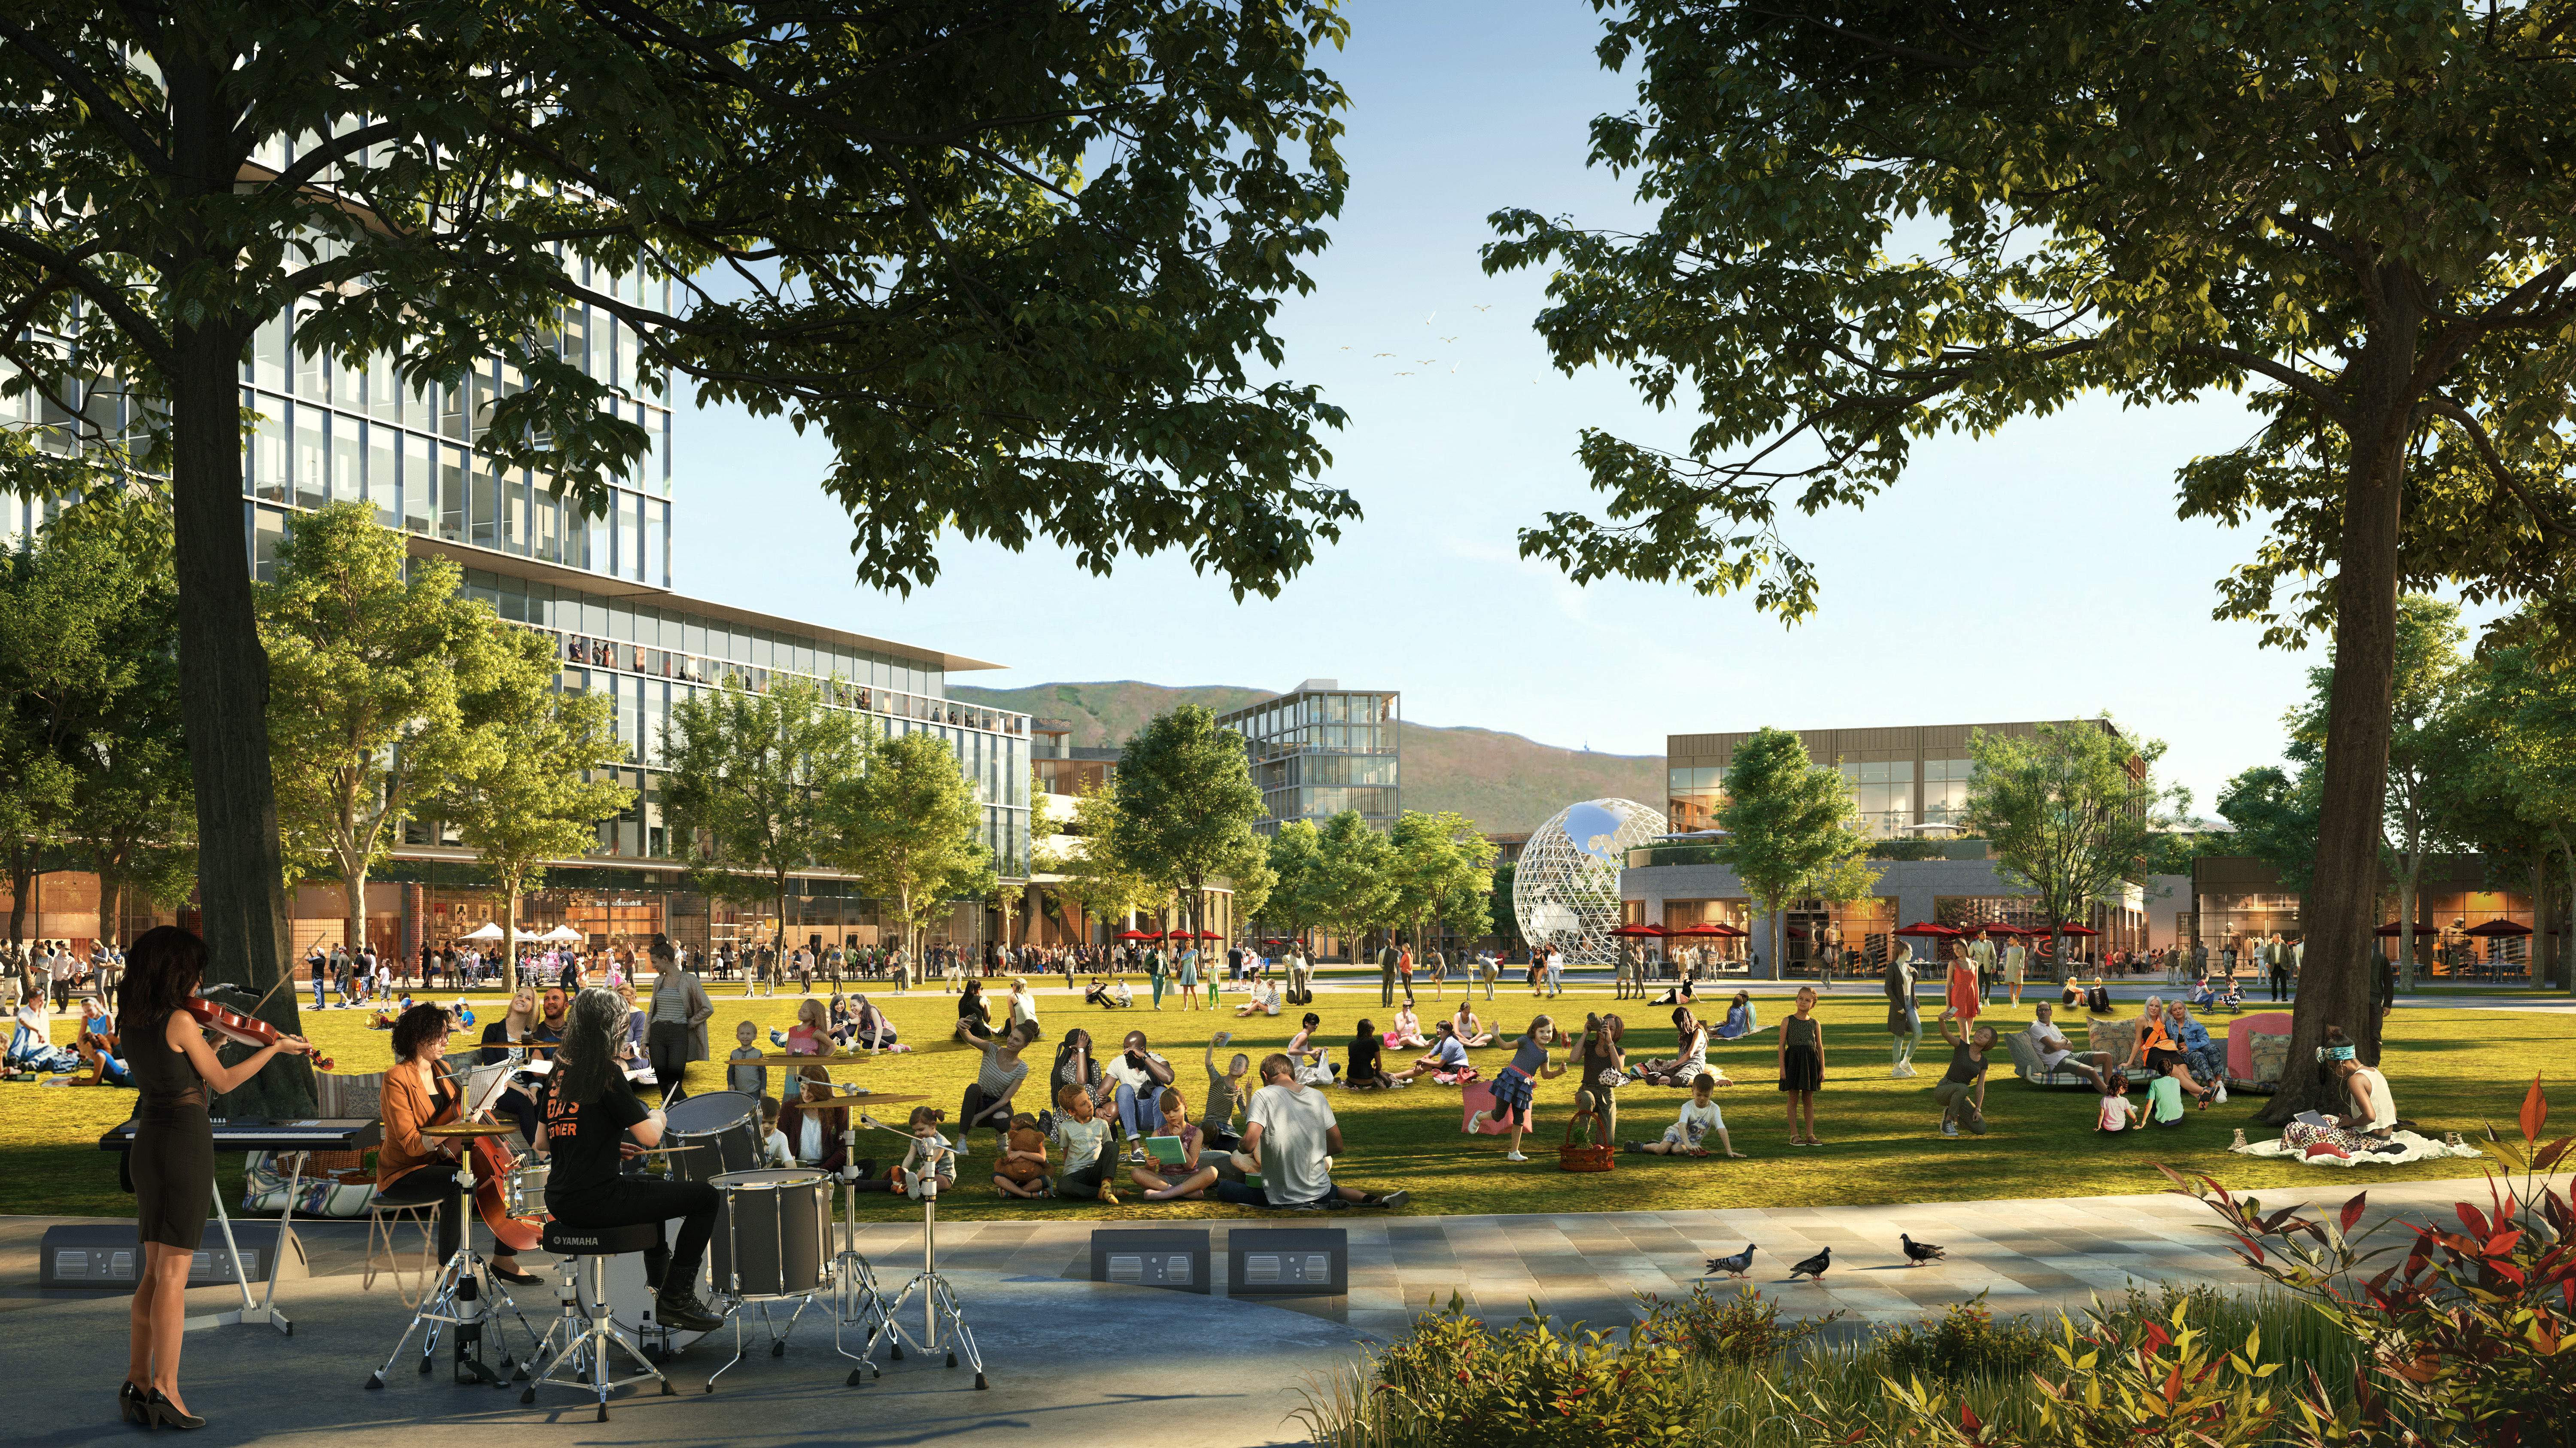 The Point of the Mountain State Land Authority has released new renderings of what the southern Salt Lake County development might look like, including this rendering of what is being called Central Park.